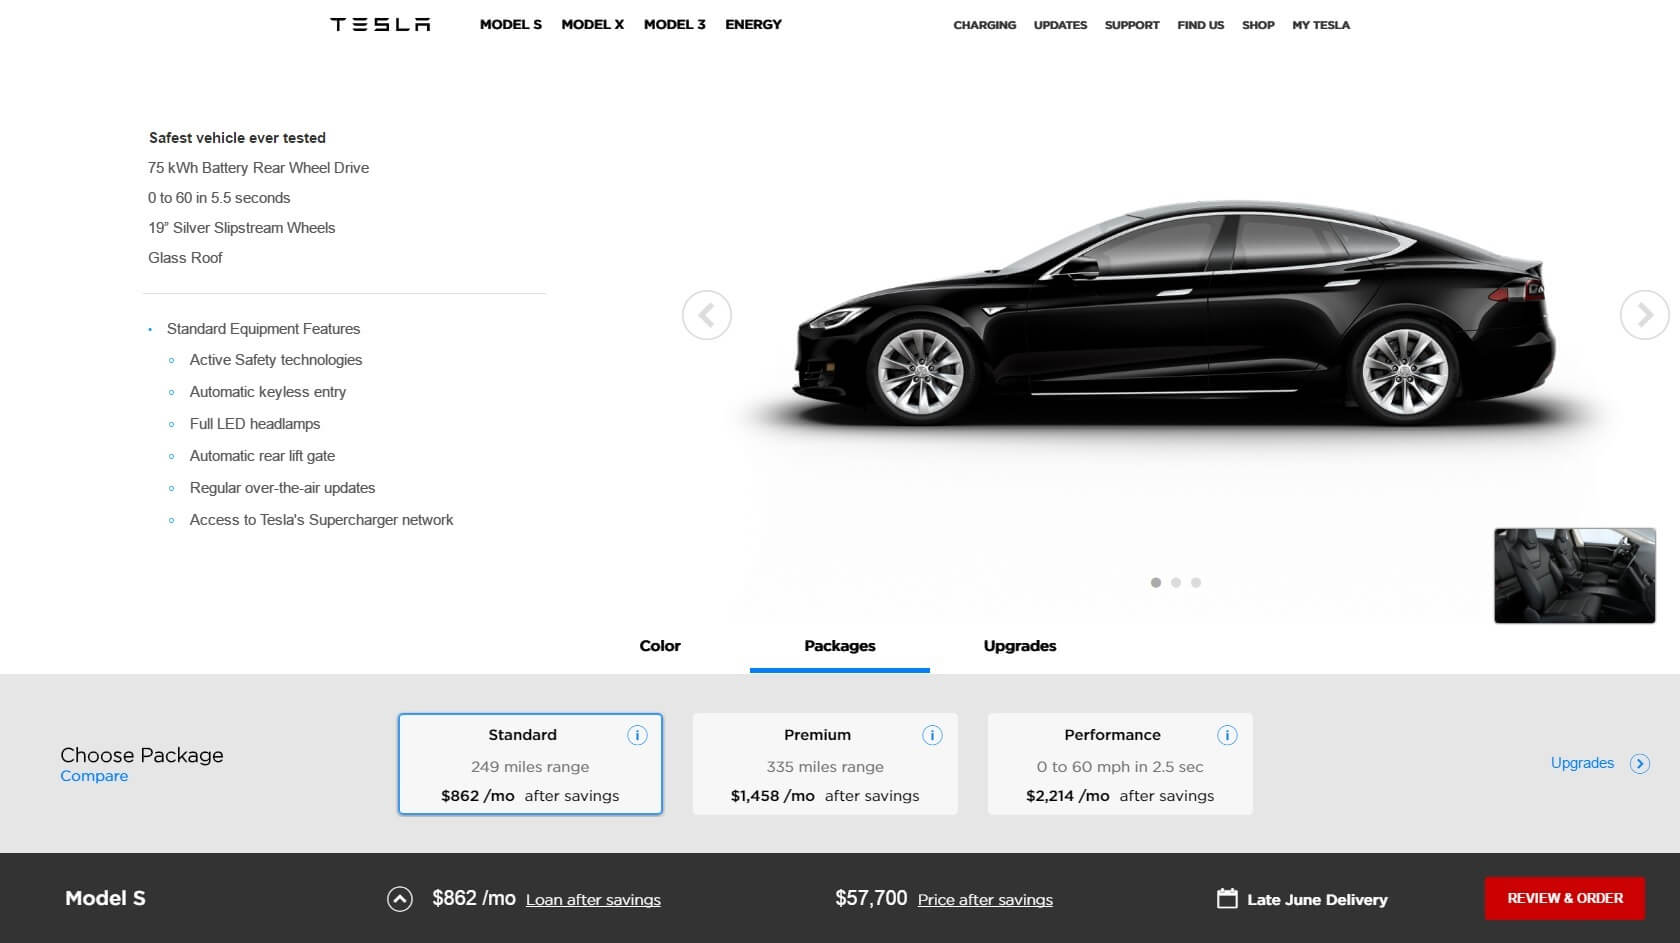 tesla testet neuen online konfigurator vor model 3. Black Bedroom Furniture Sets. Home Design Ideas